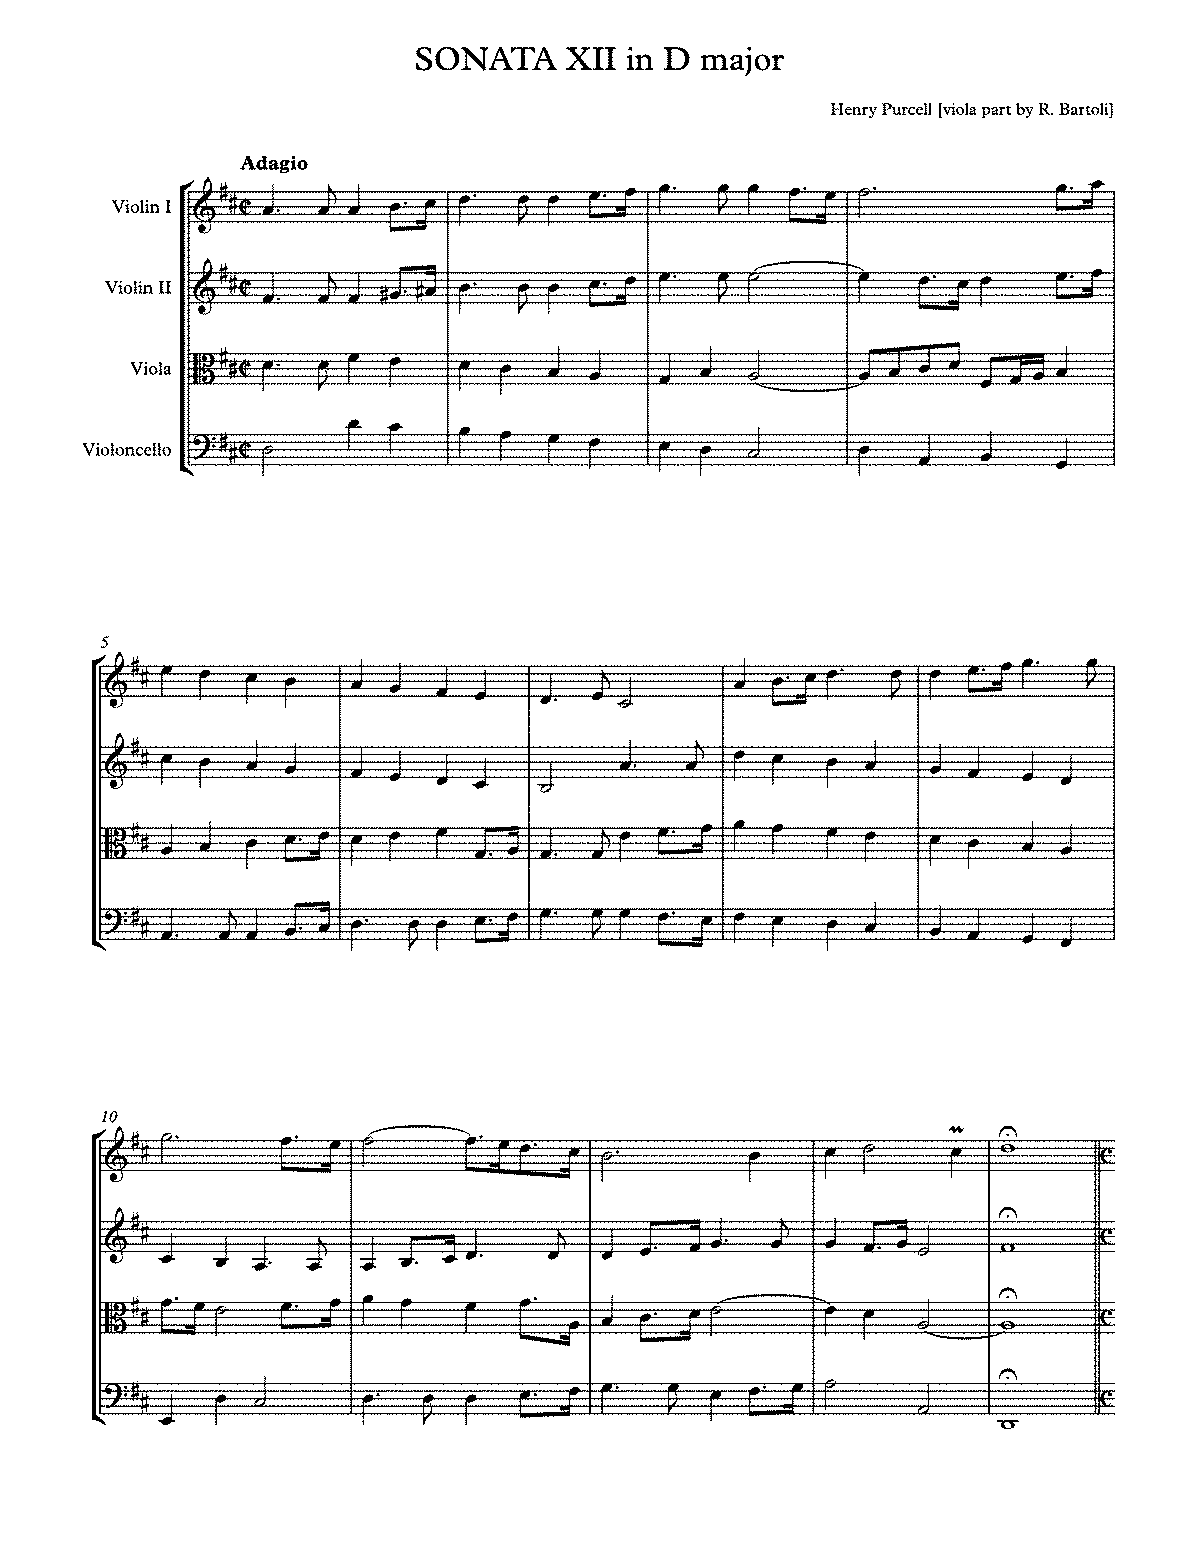 PMLP376985-Purcell Dmajor I - Full Score.pdf